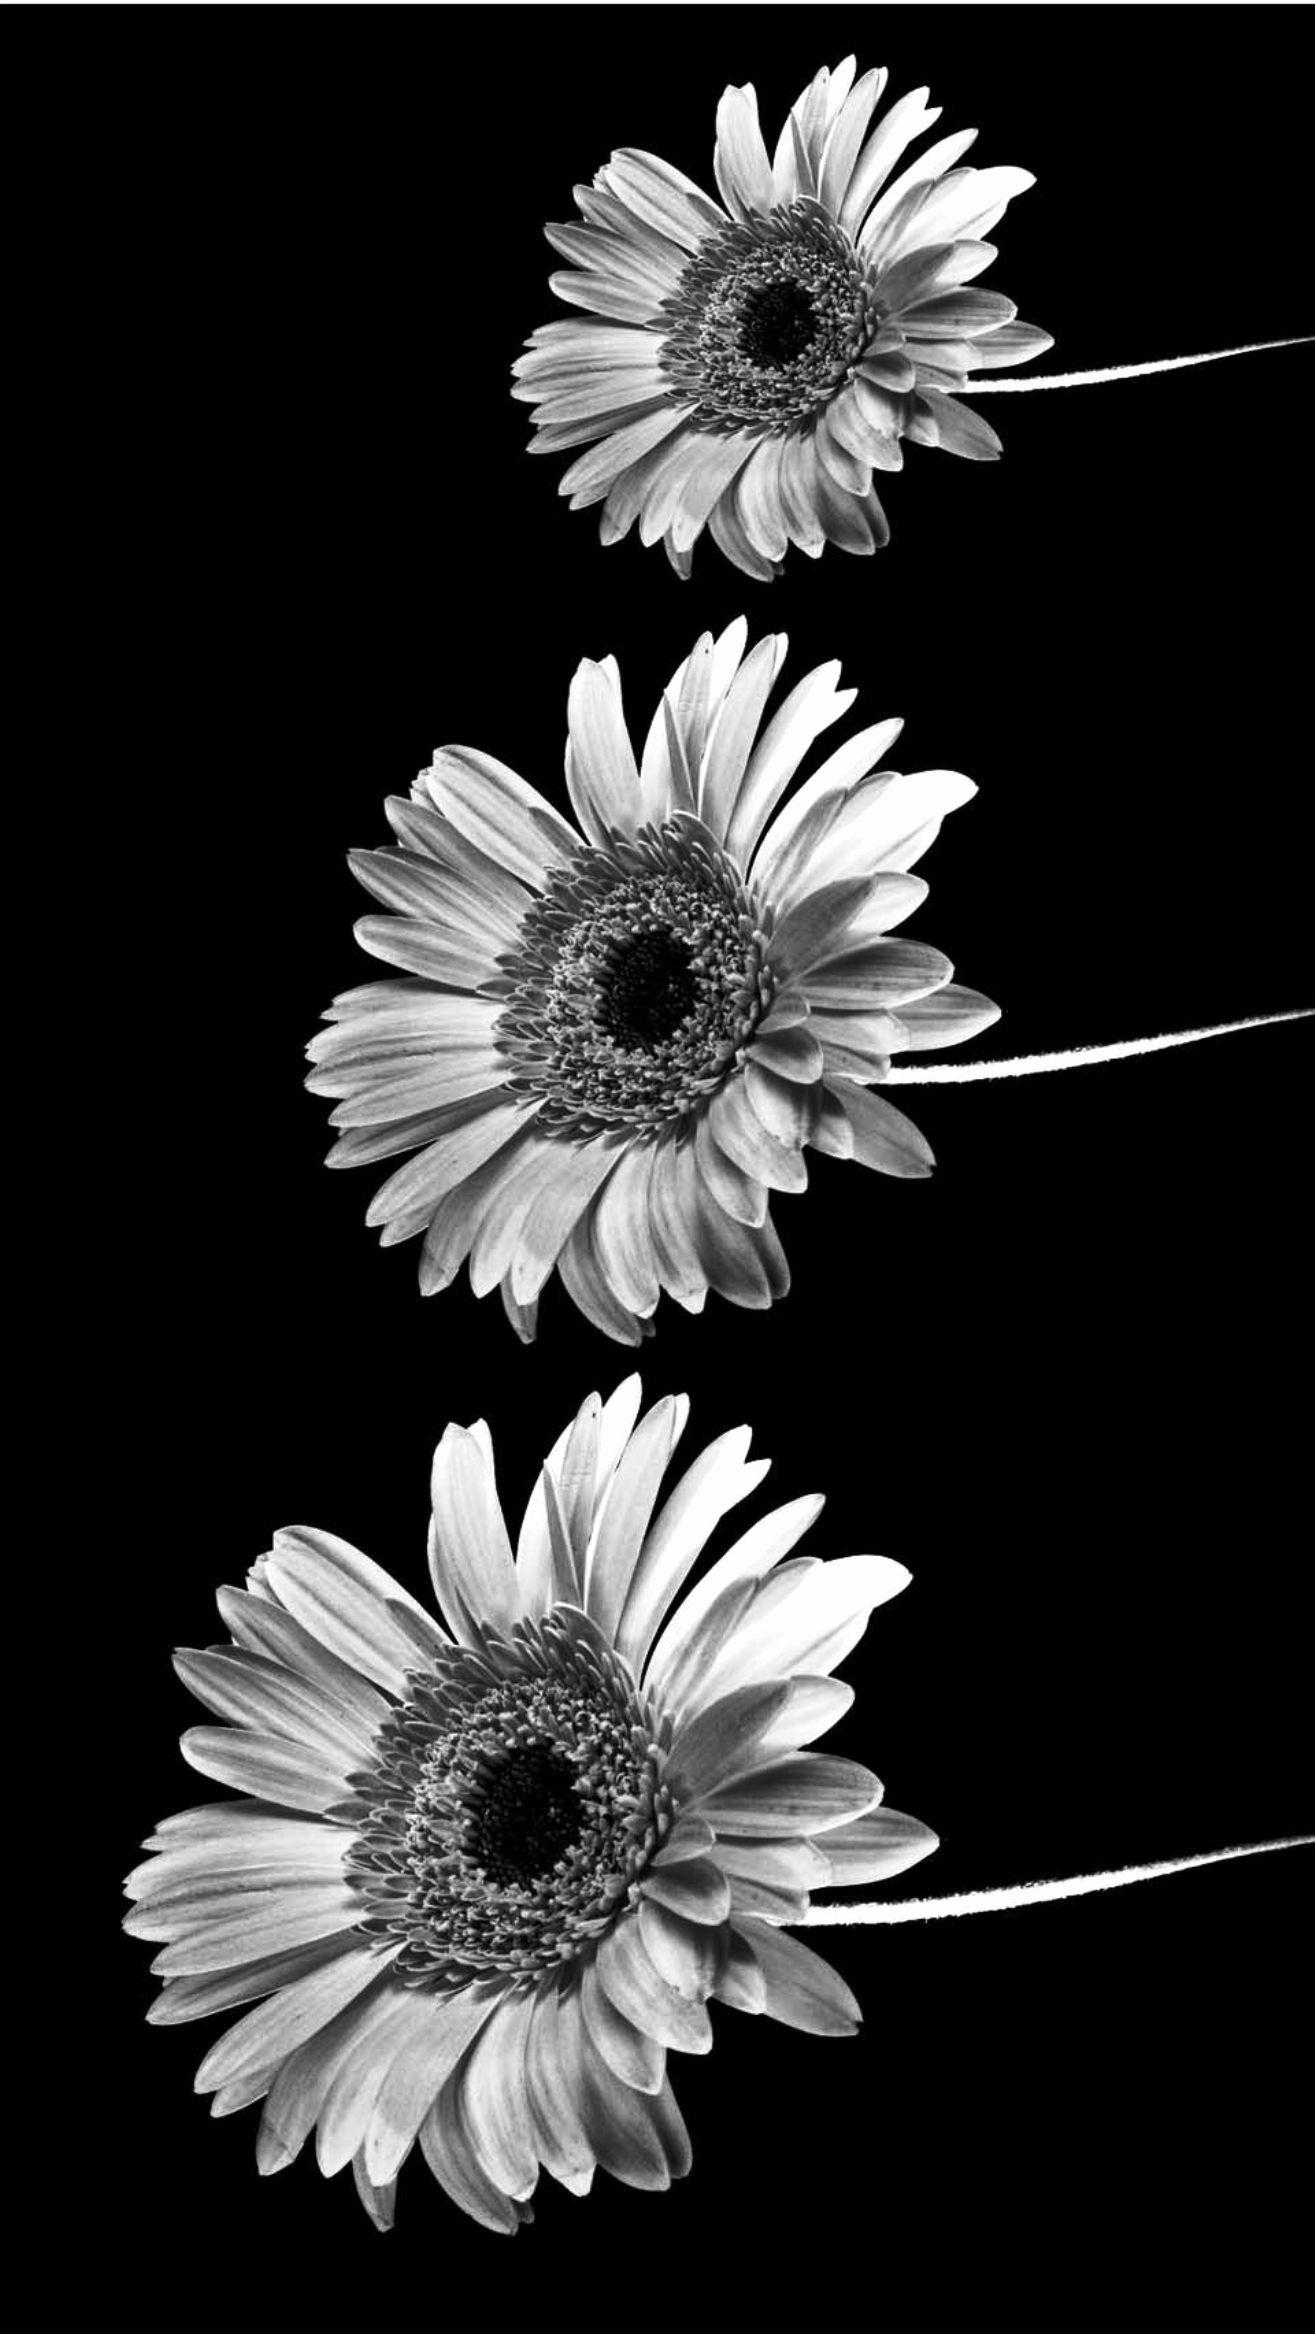 Iphone wallpaper tumblr awesome black and white iphone wallpapers